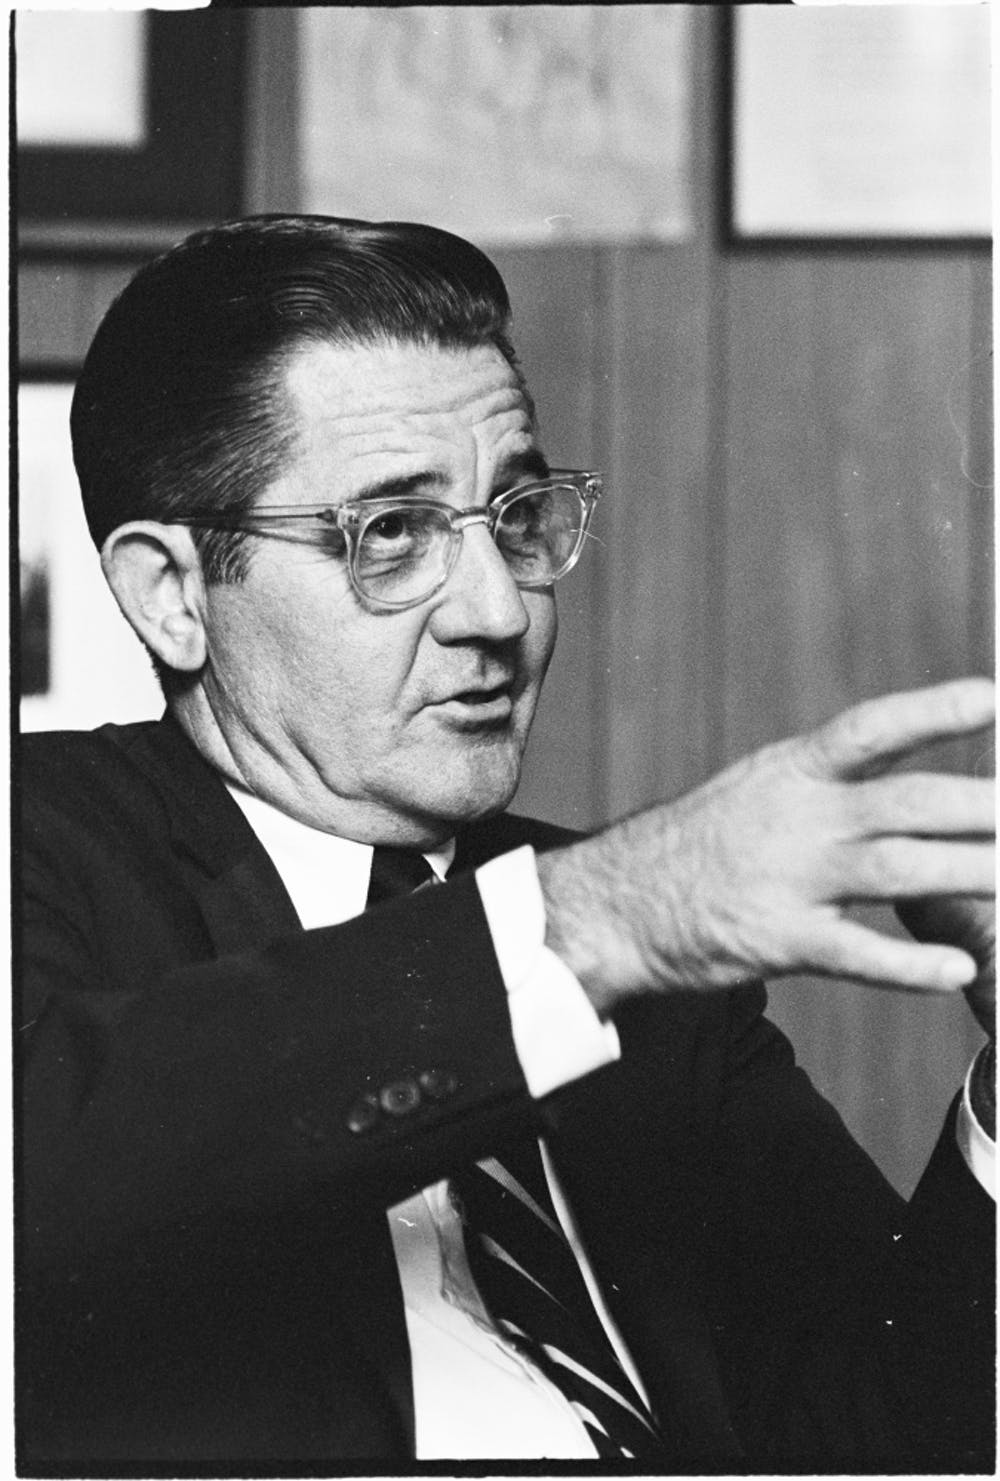 """William """"Bill"""" Friday passed away on October 12, 2012 at age 92. He was the <span class=""""caps"""">UNC</span> system president from 1956 to 1986.  Courtesy of Wilson Library."""